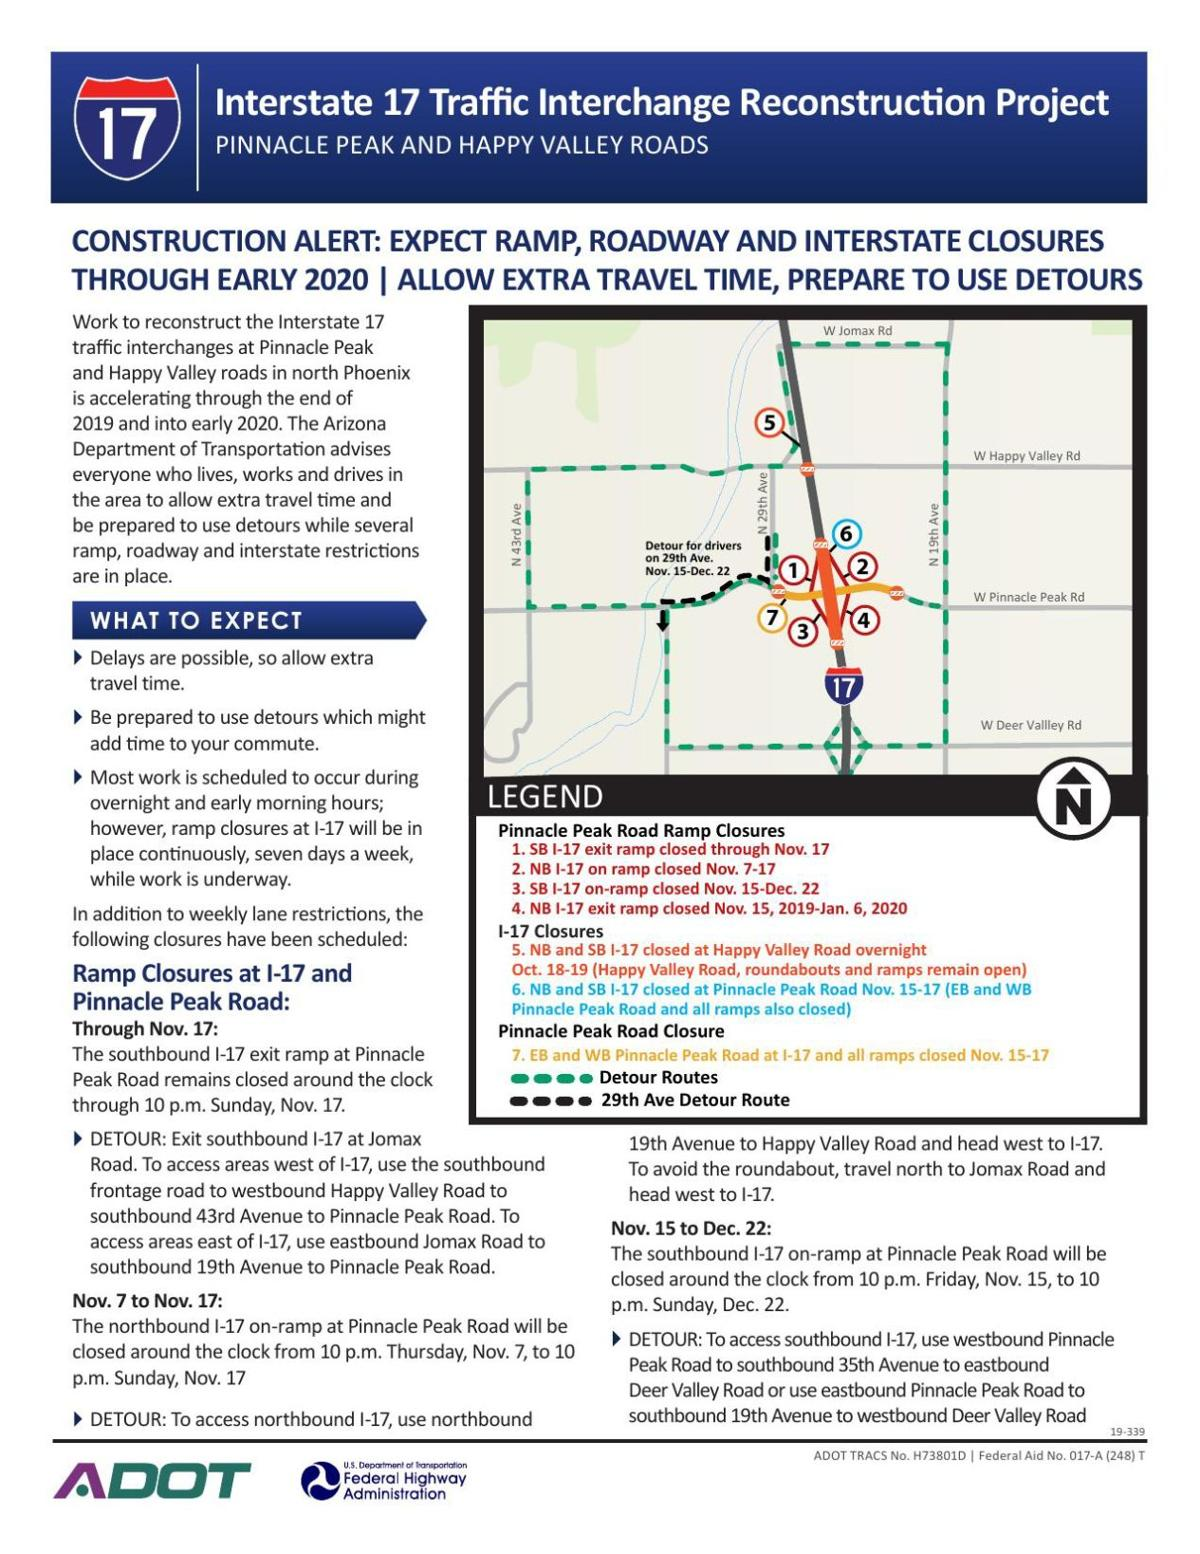 Interstate 17 Traffic Interchange Reconstruction Project